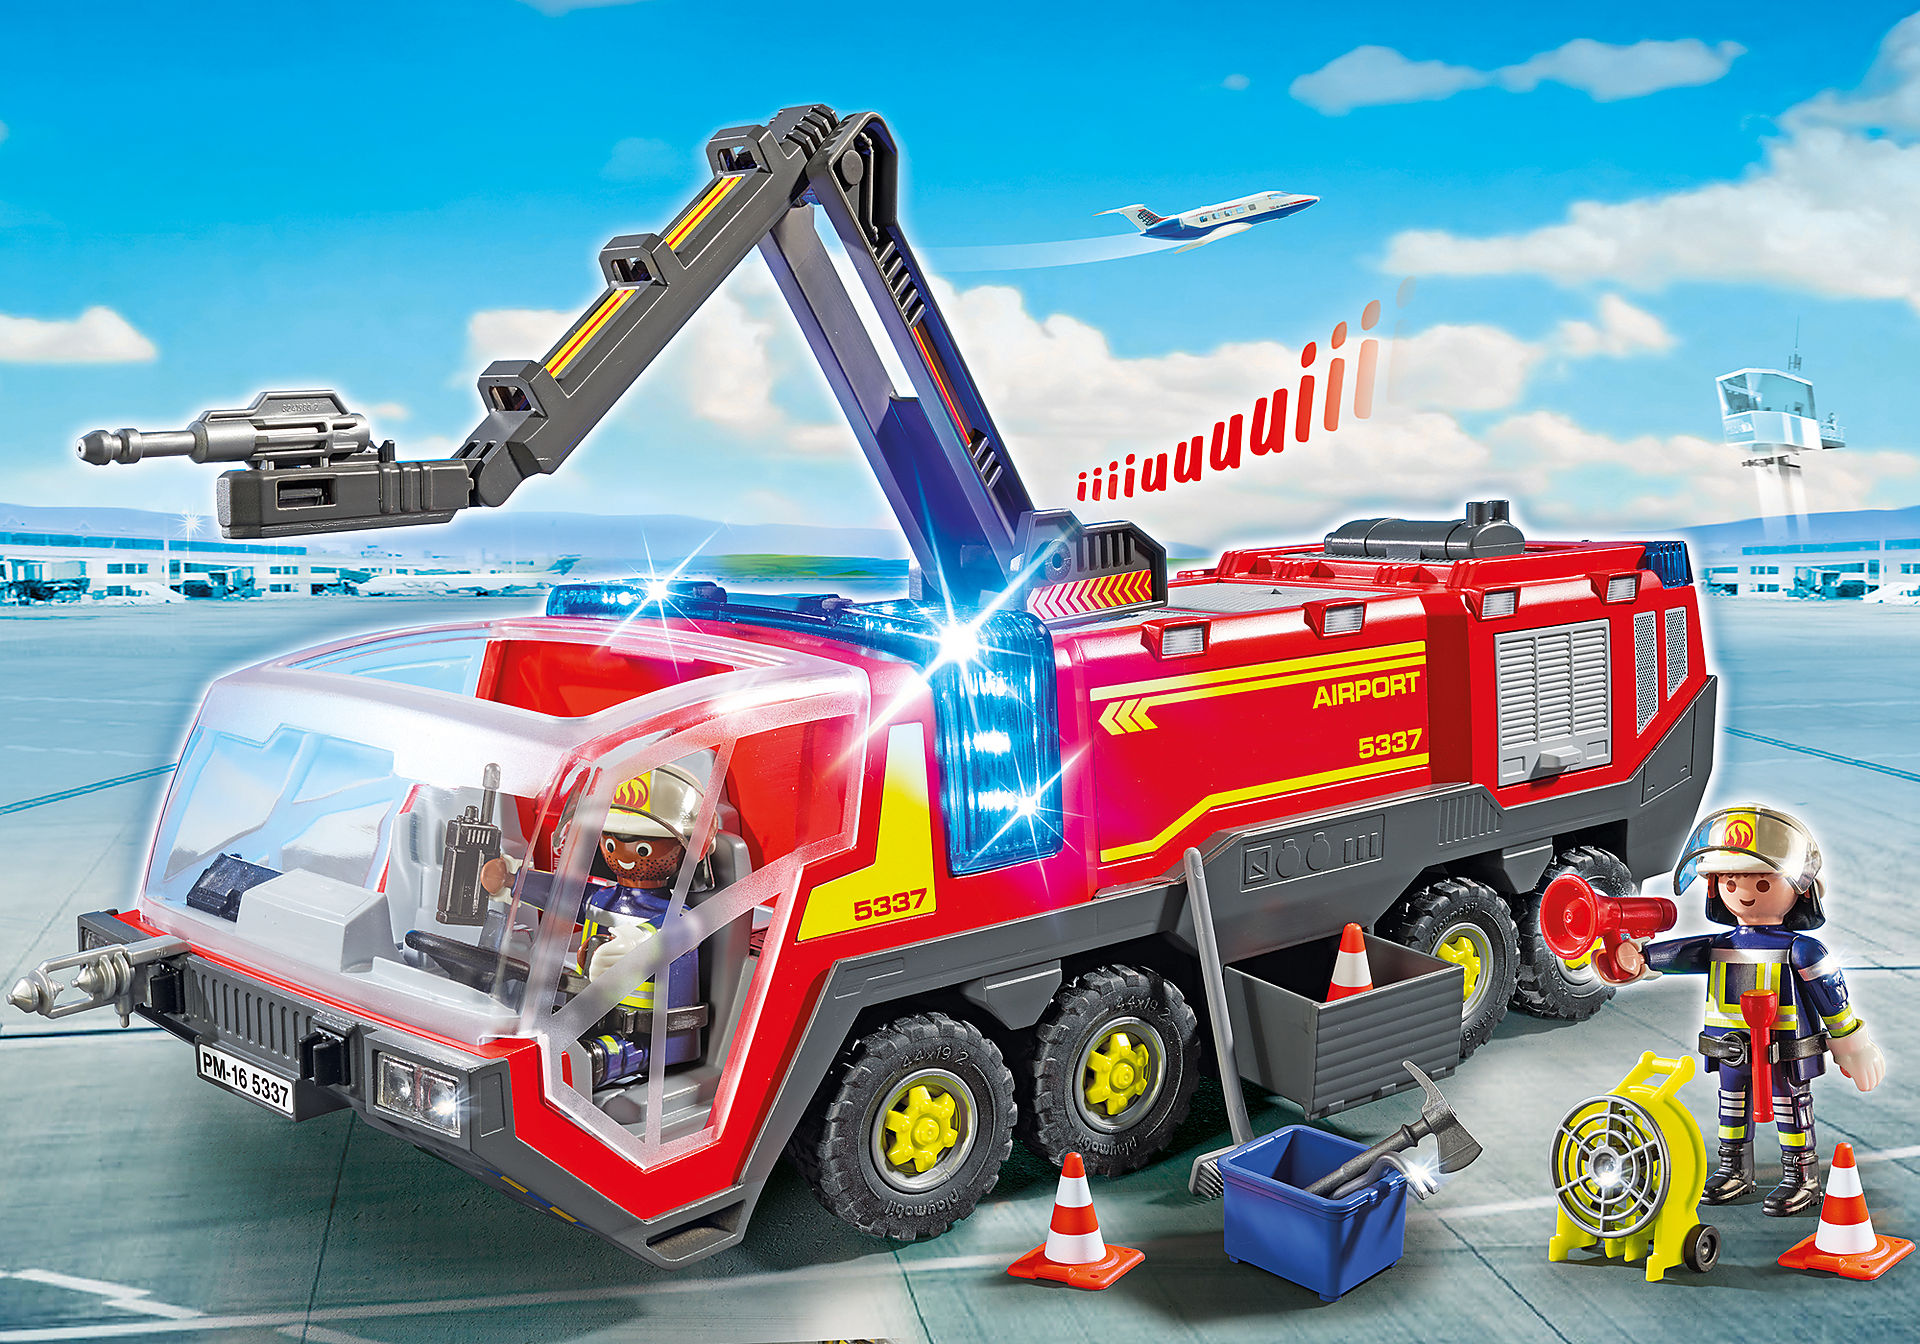 http://media.playmobil.com/i/playmobil/5337_product_detail/Airport Fire Engine with Lights and Sound